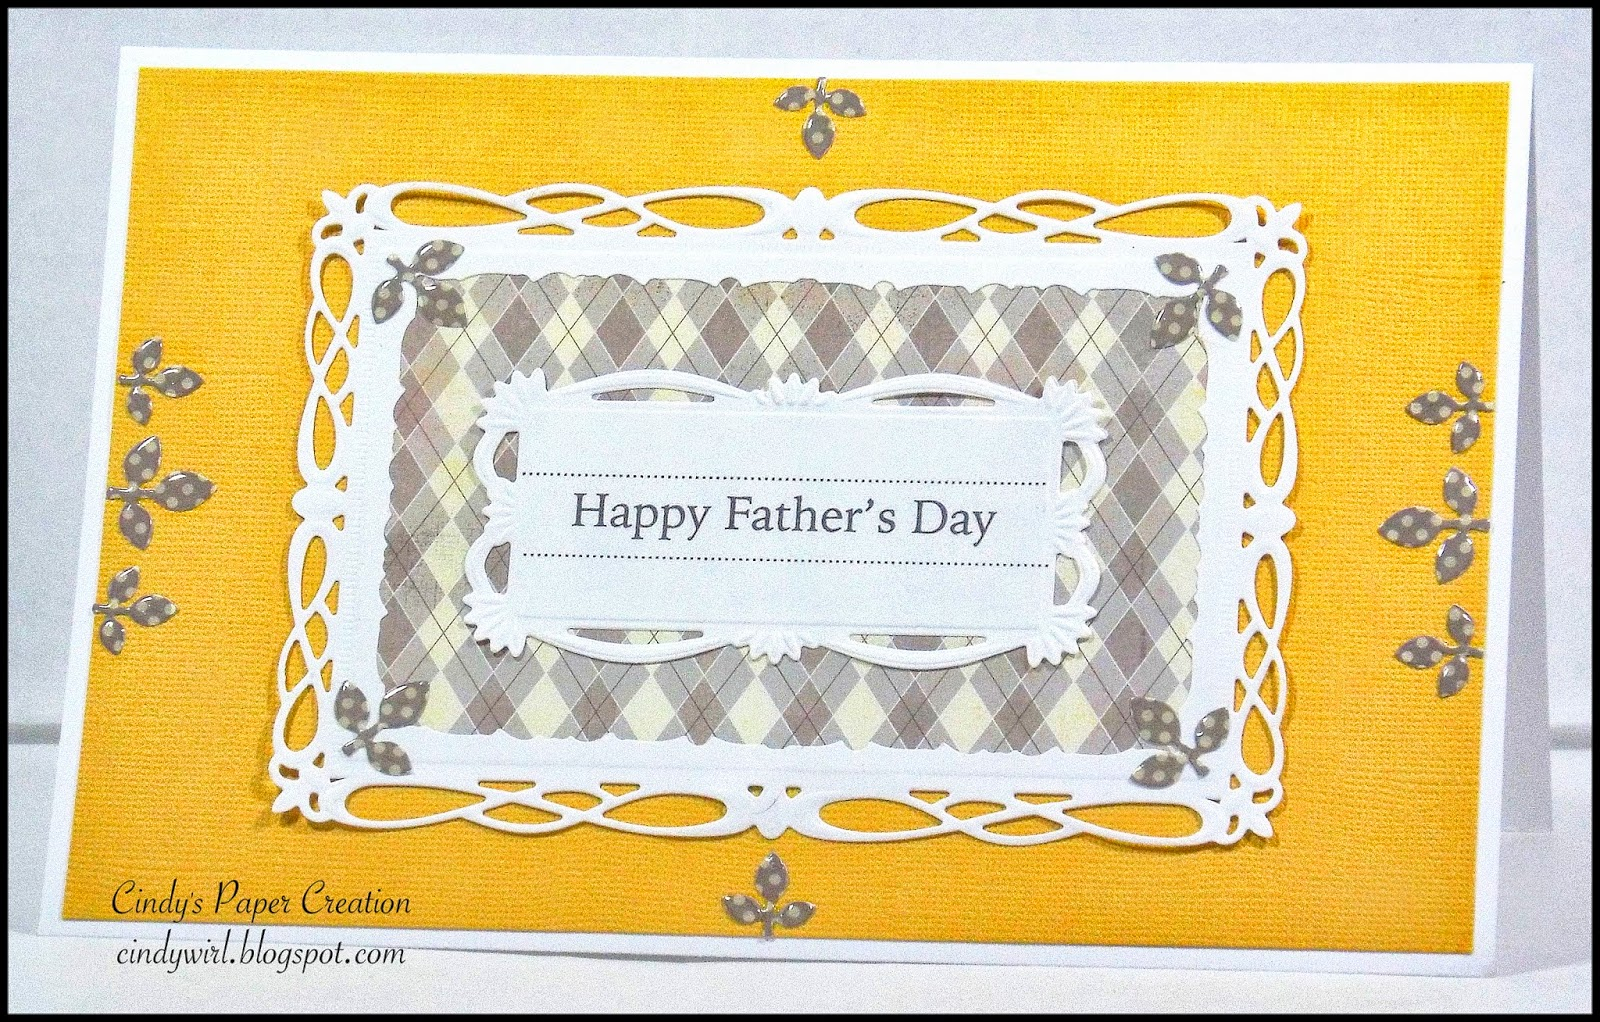 cindywirl.blogspot.com Father's Day card